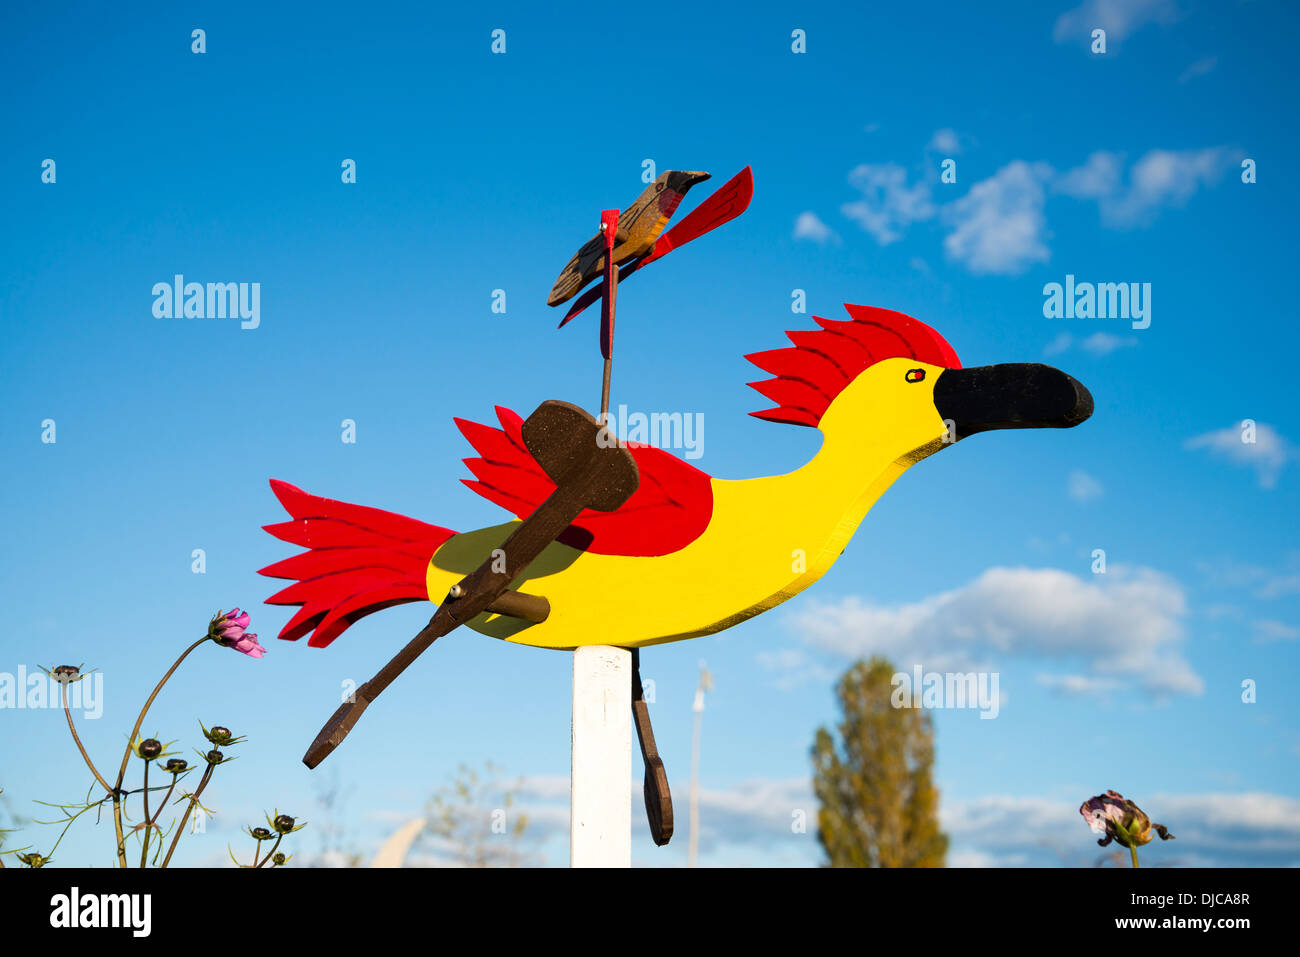 Roadrunner whirligig wind toy, Westham Island Herb Farm, Ladner, British Columbia, Canada - Stock Image